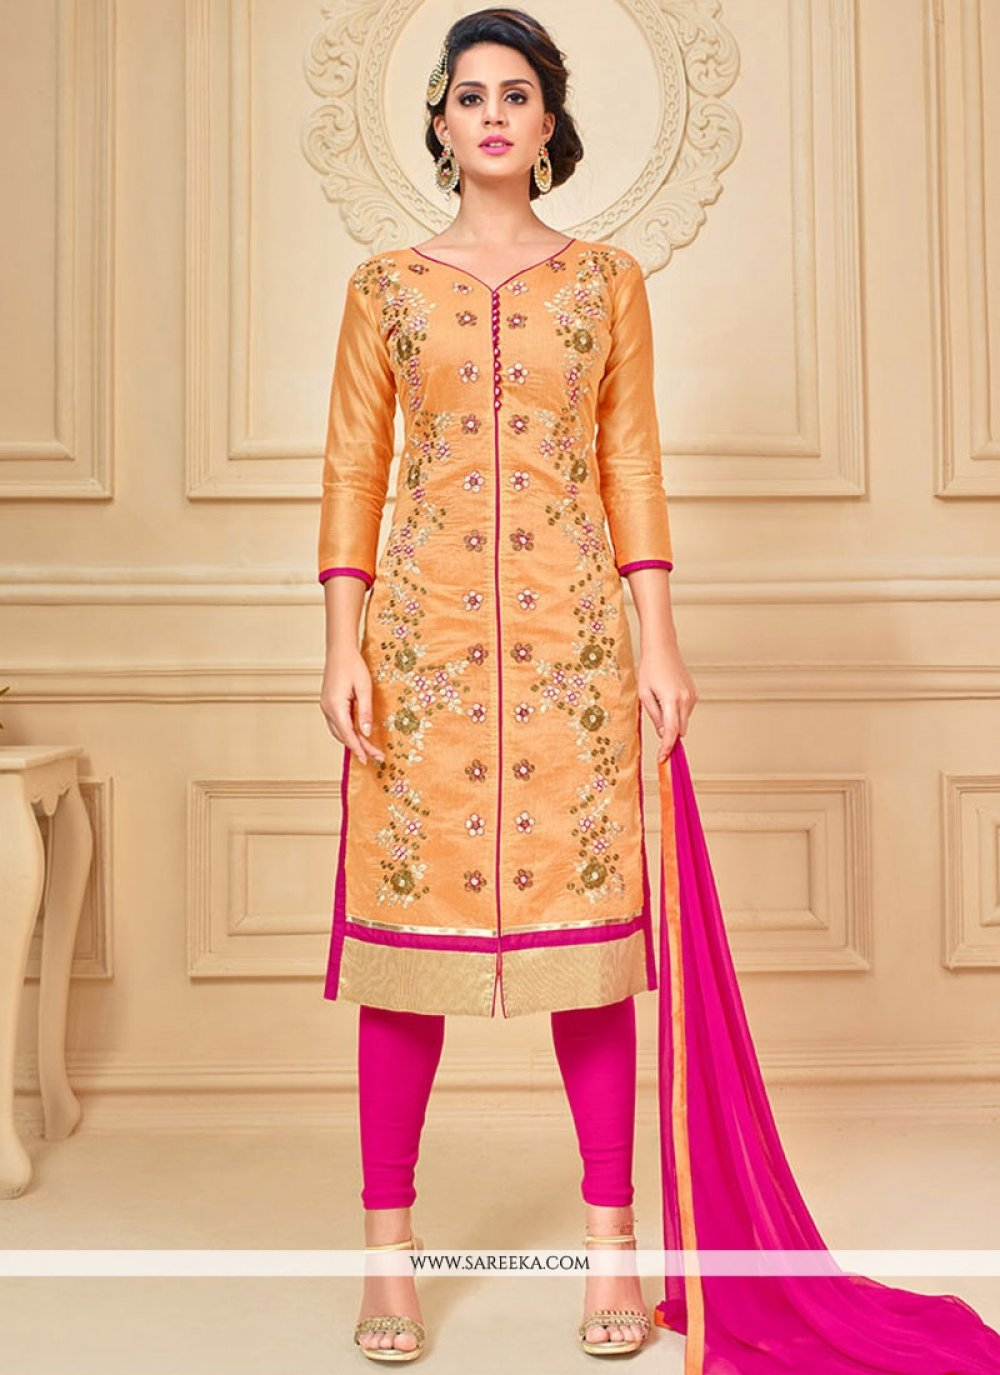 Hot Pink and Peach Lace Work Chanderi Cotton Churidar Suit